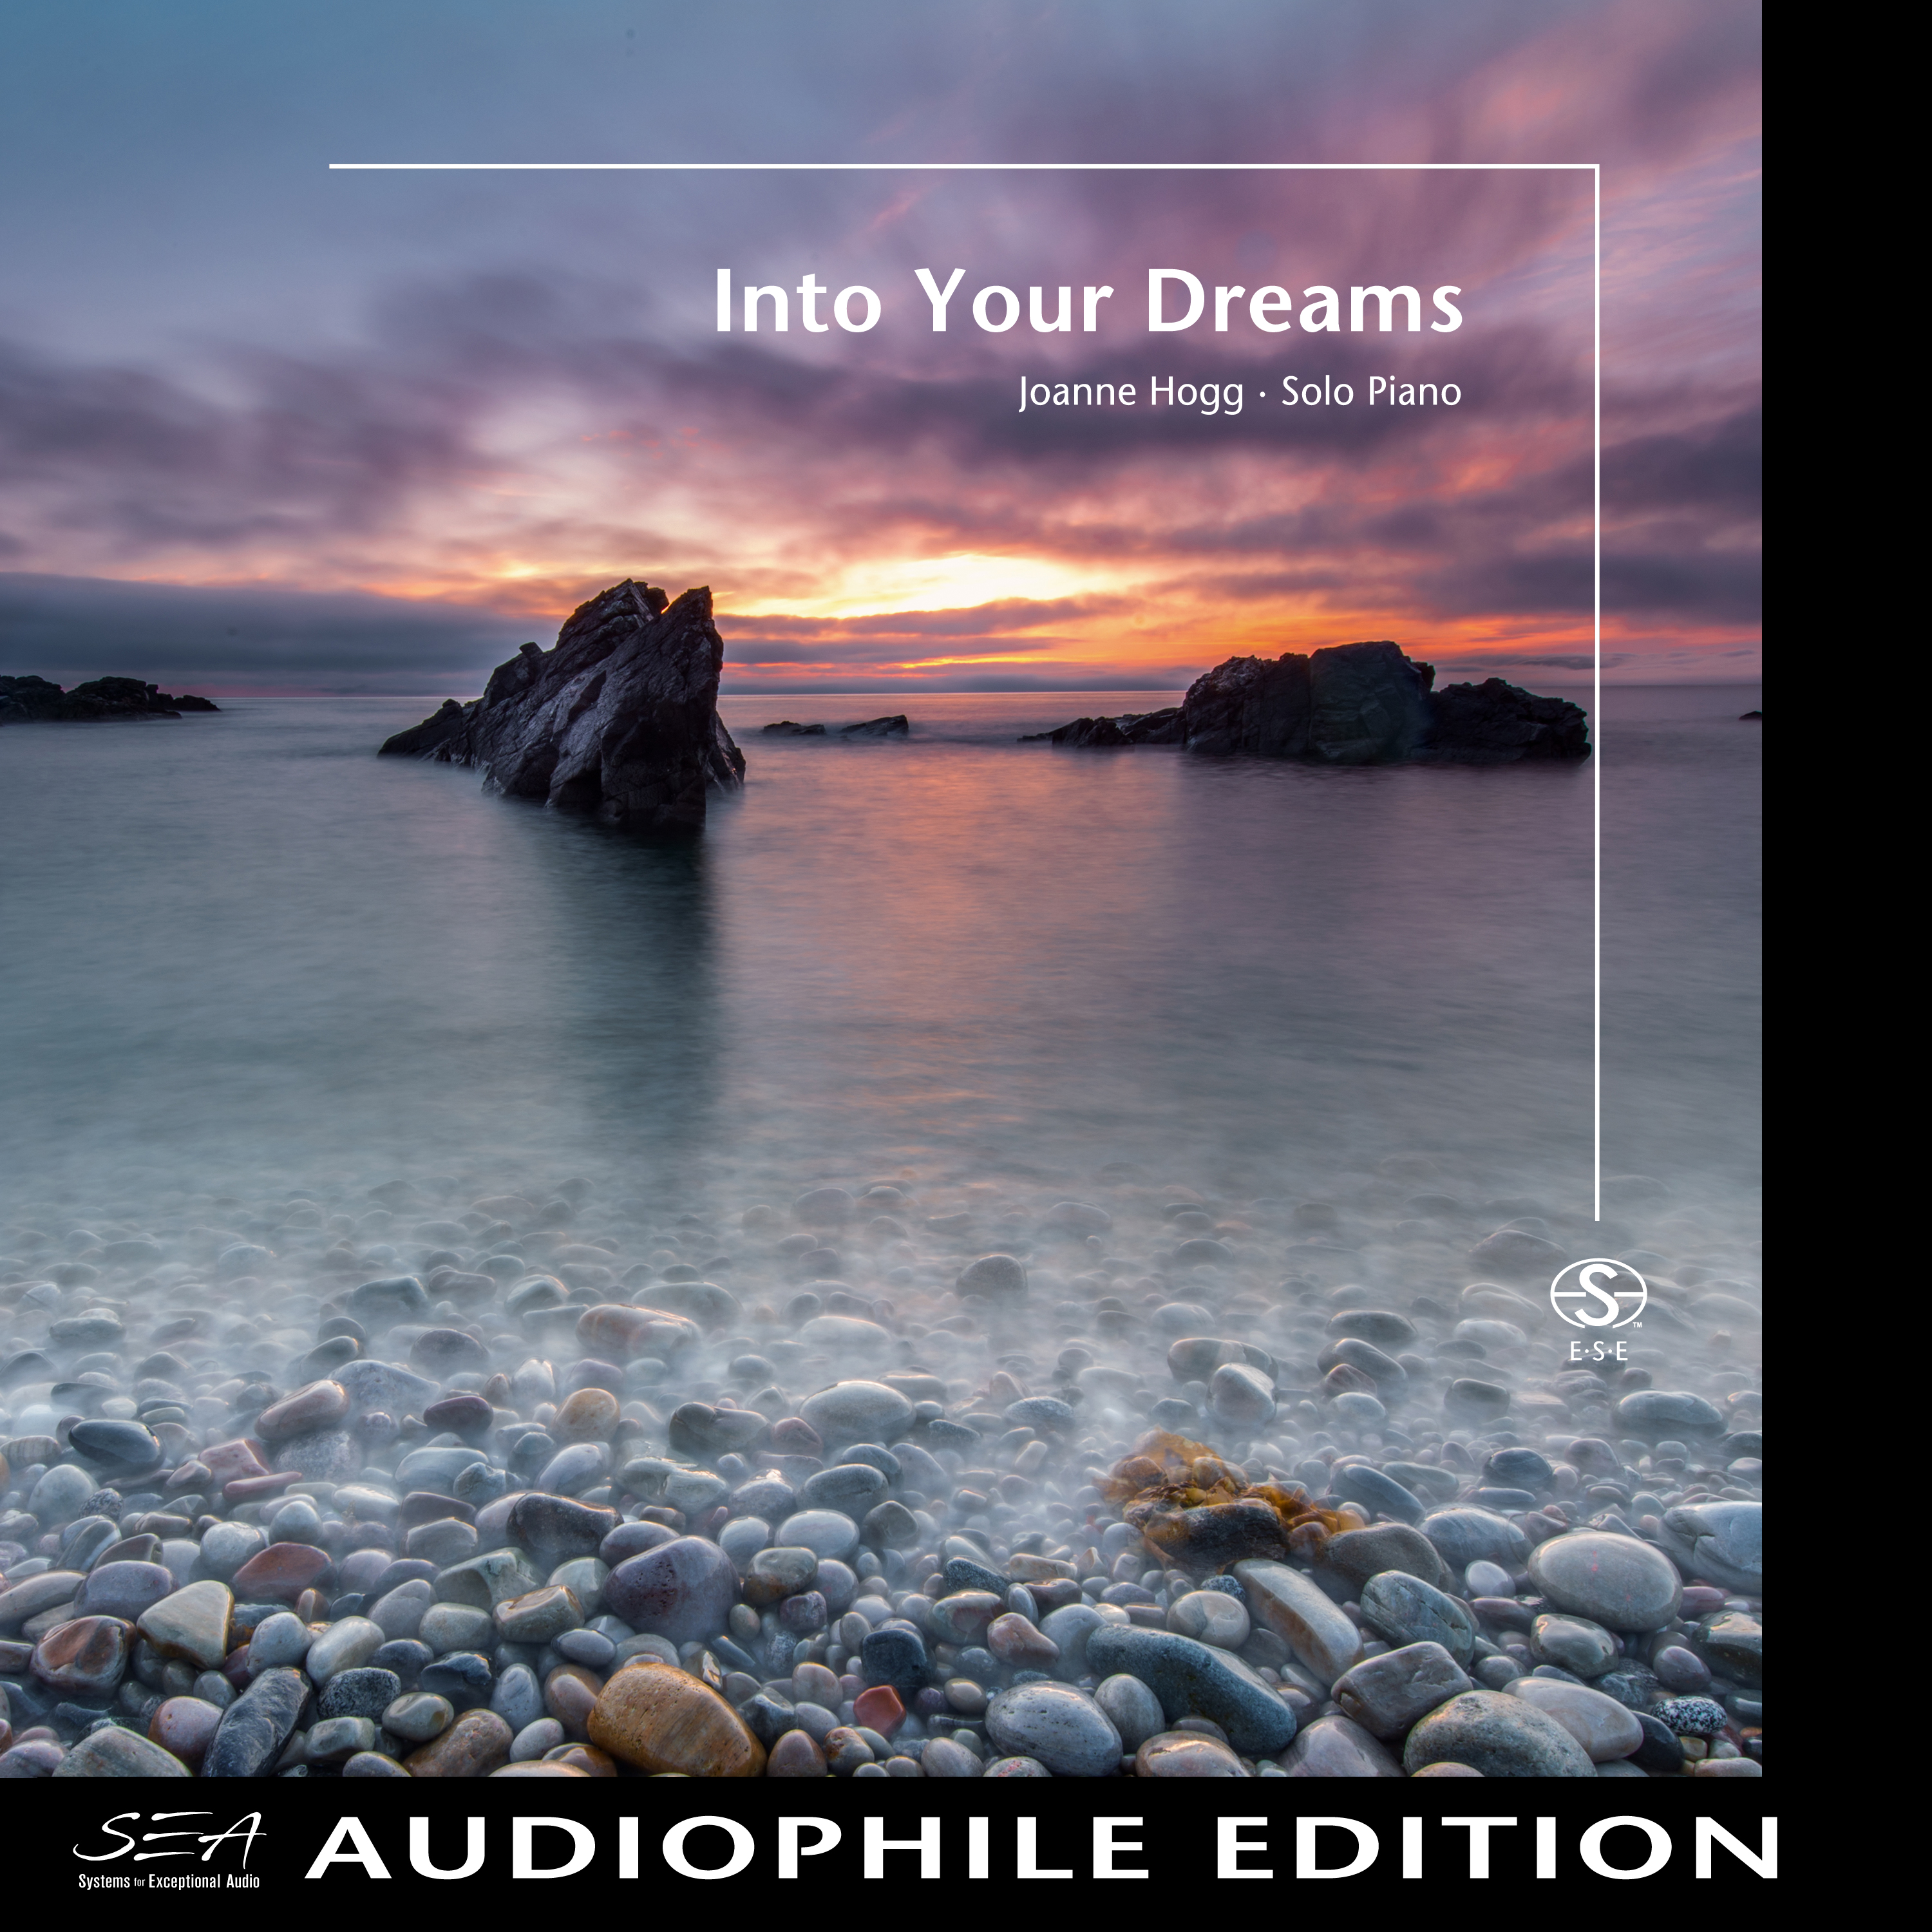 Joanne Hogg - Into Your Dreams - Cover Image